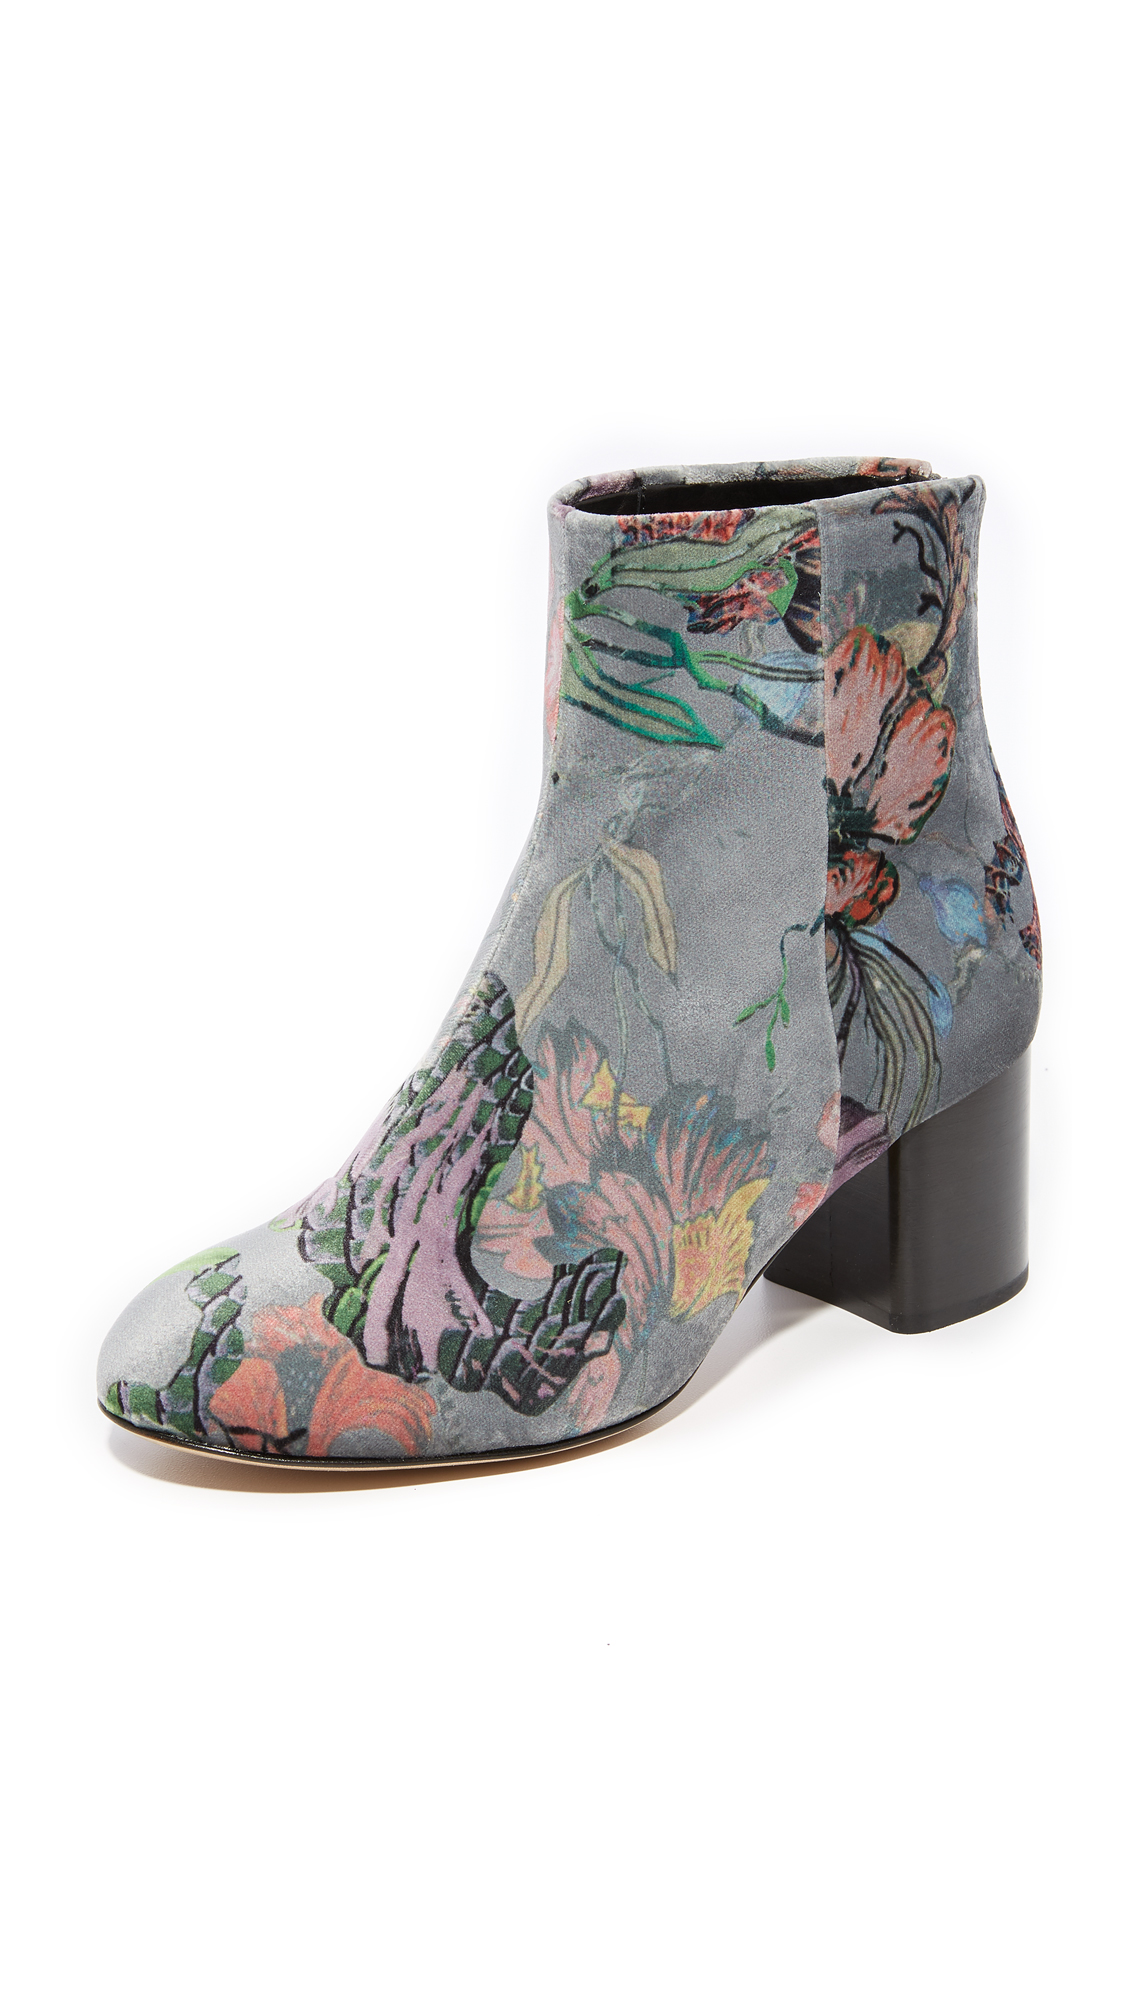 Rag & Bone Drea Booties - Grey Floral